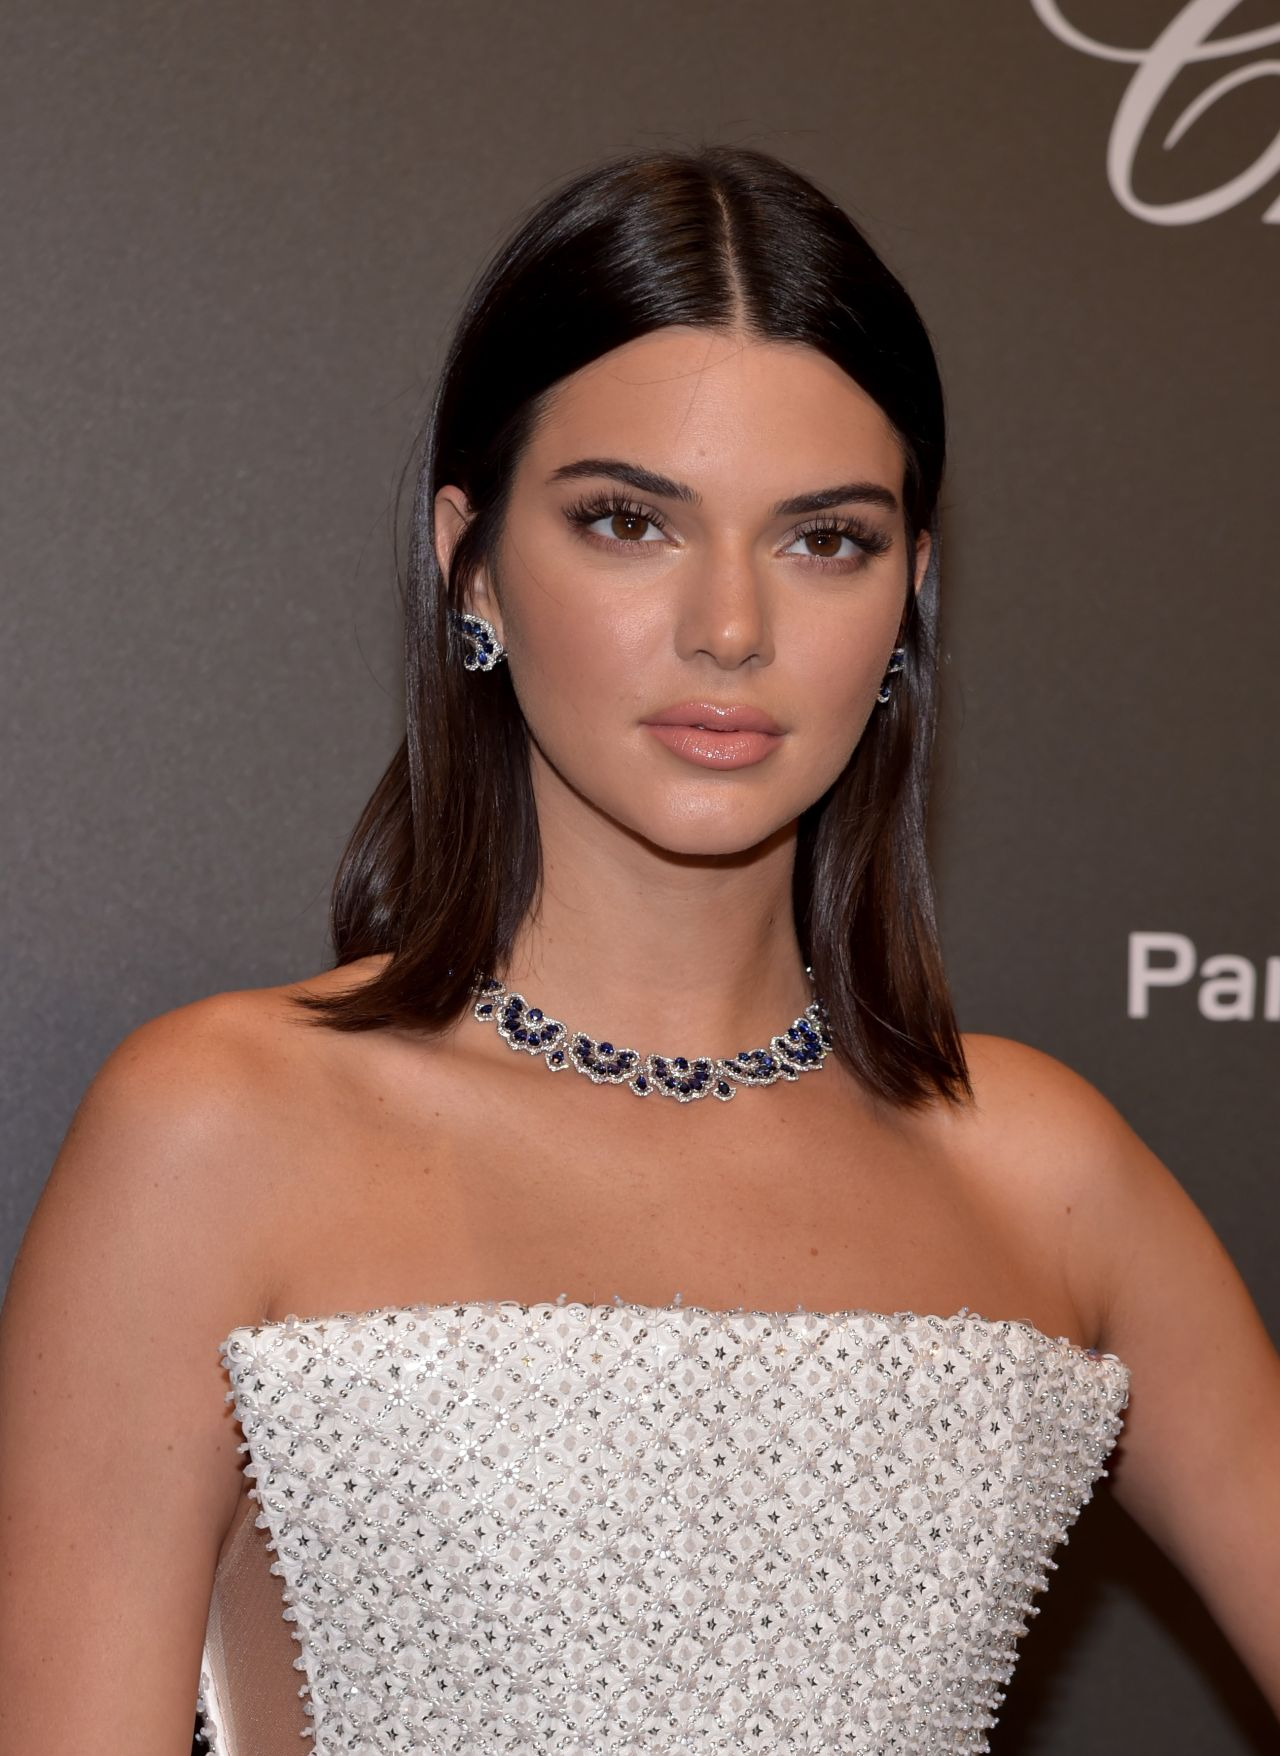 Kendall Jenner Caviar Kaspia Dinner After Pharmacy Stop: Kendall Jenner At Chopard Space Party In Cannes, France 05